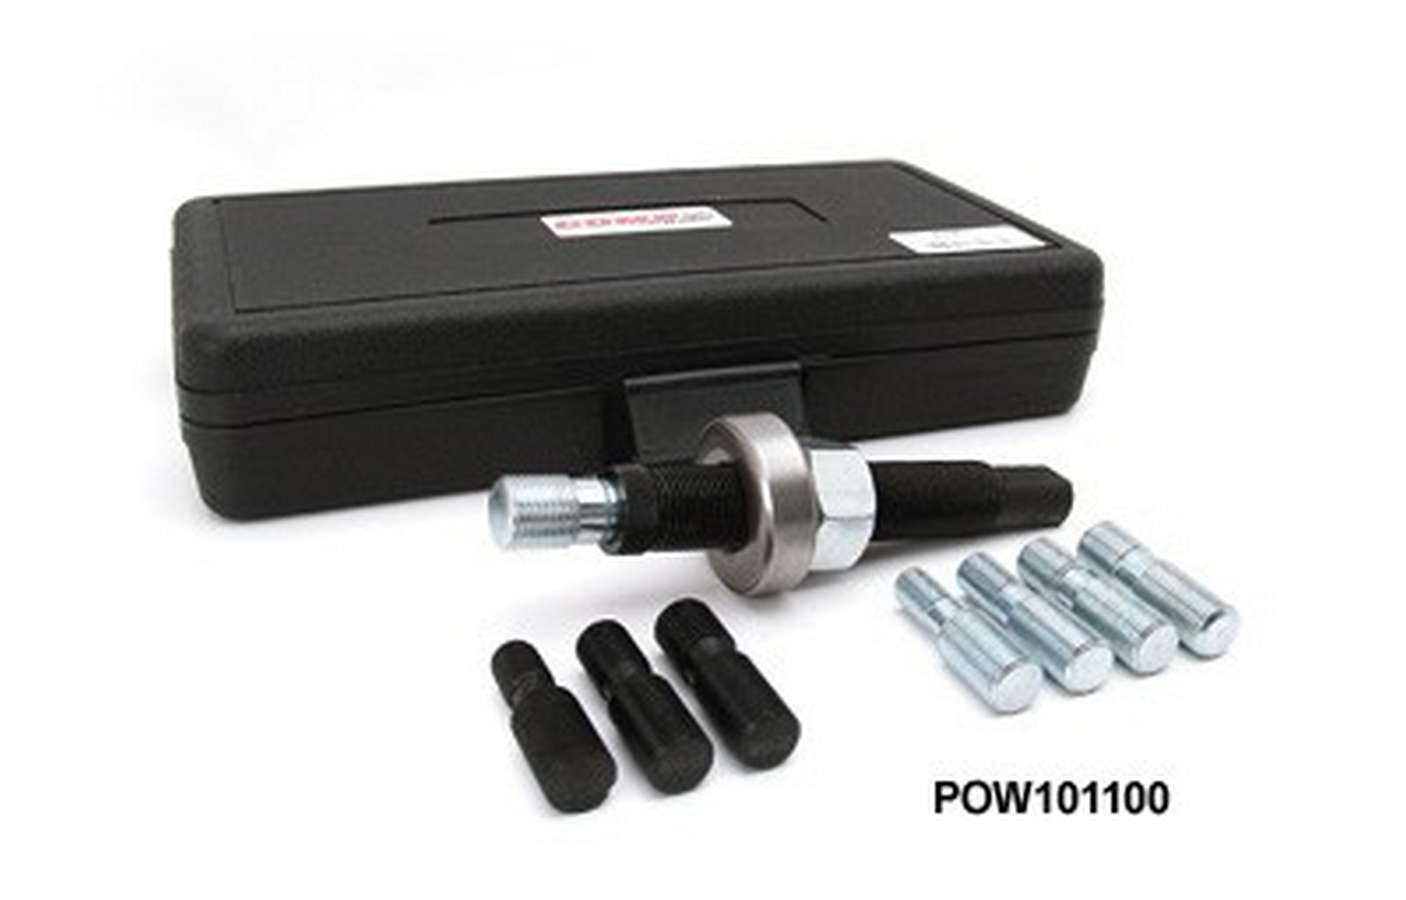 Powerhouse 101100 Harmonic Balancer Installation Tool, Carry Case, 8 Adapters Included, Steel, Universal, Kit